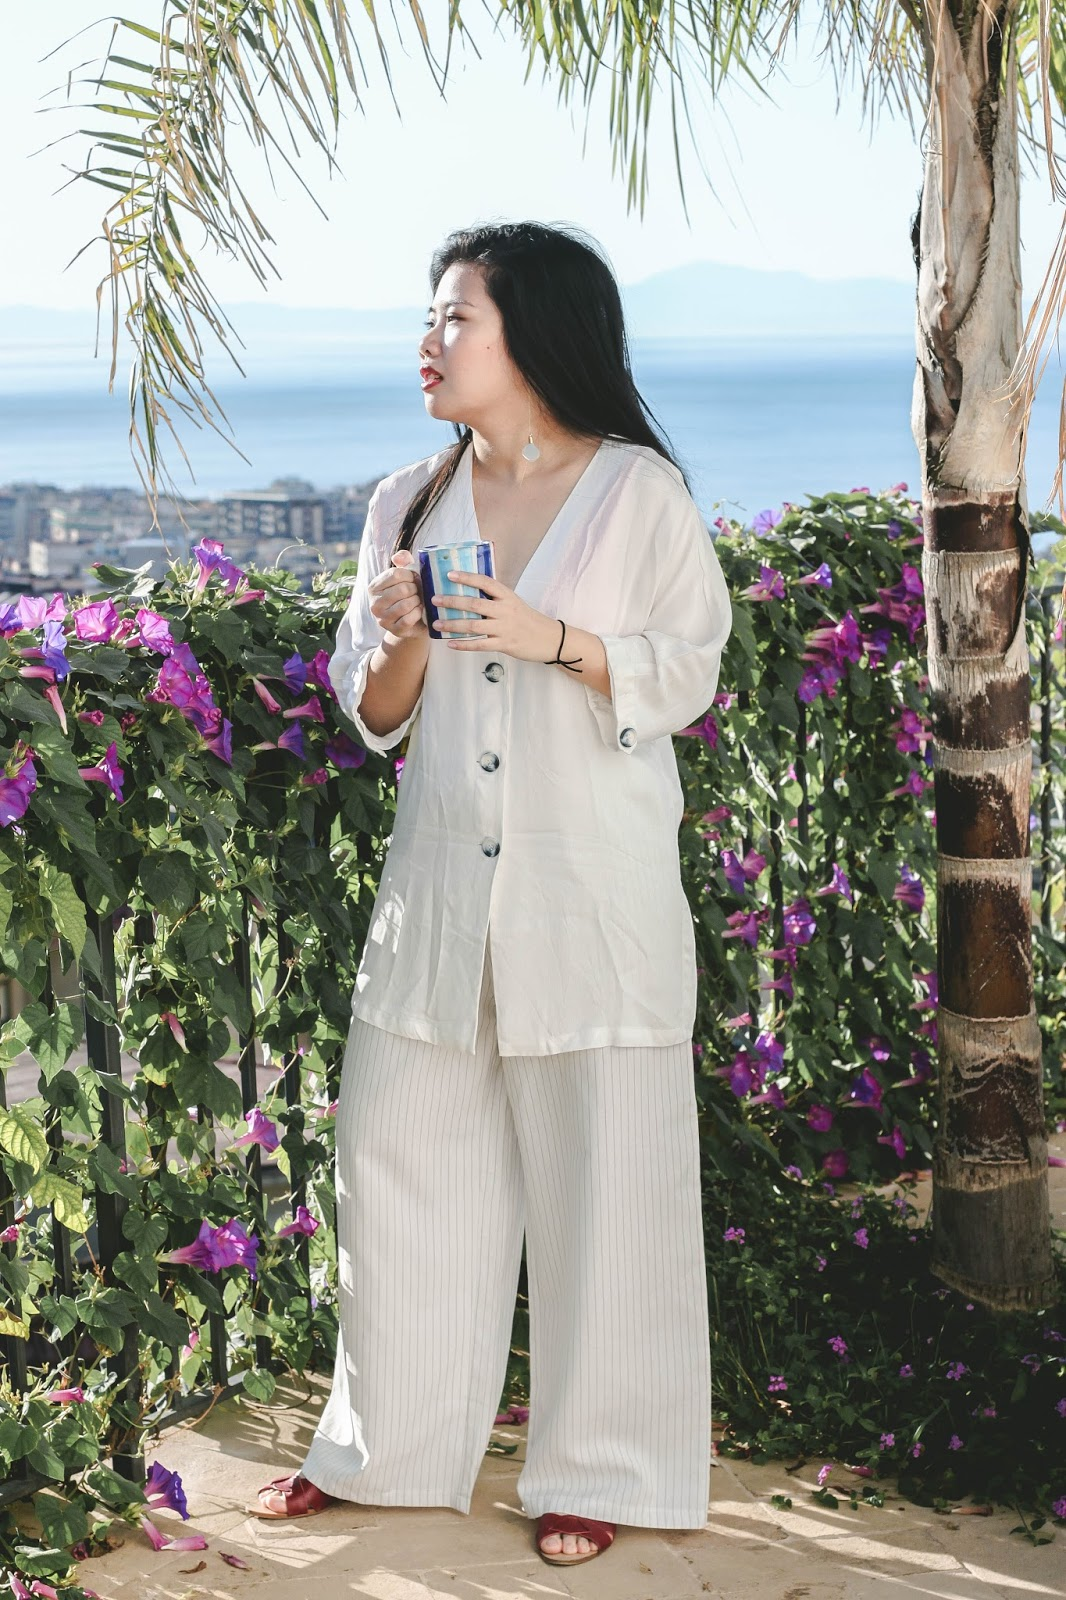 singapore blogger stylist look book holiday europe italy salerno airbnb apartment view photography street style fashion